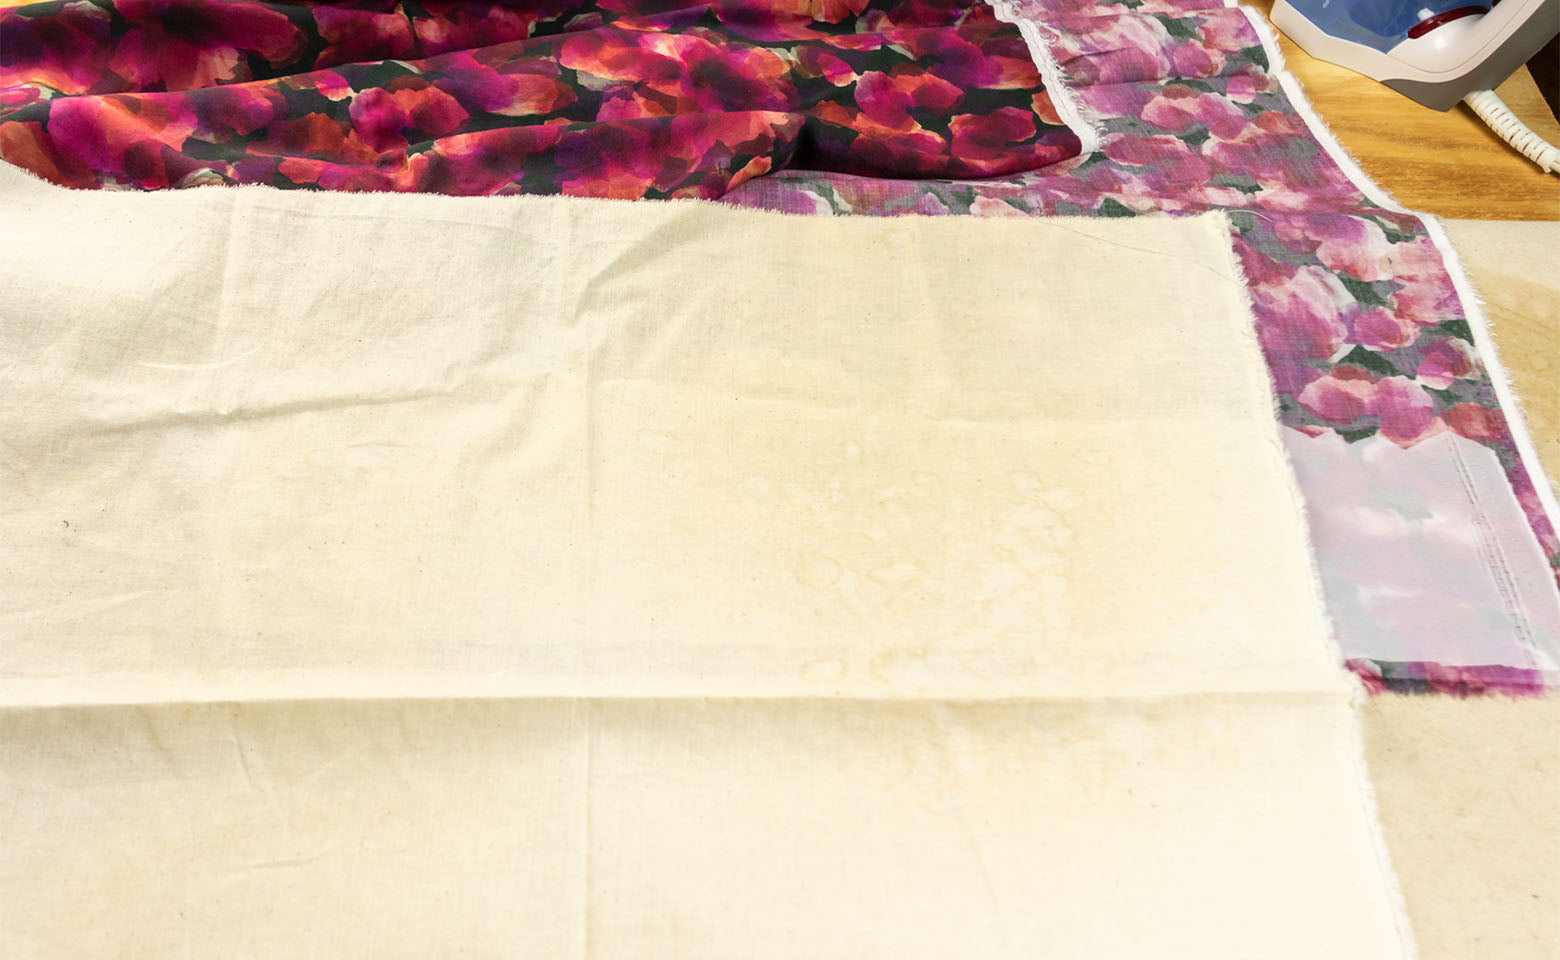 How to Block Fuse Fabric - Step 4 - Place press cloth on top of interfacing and fashion fabric